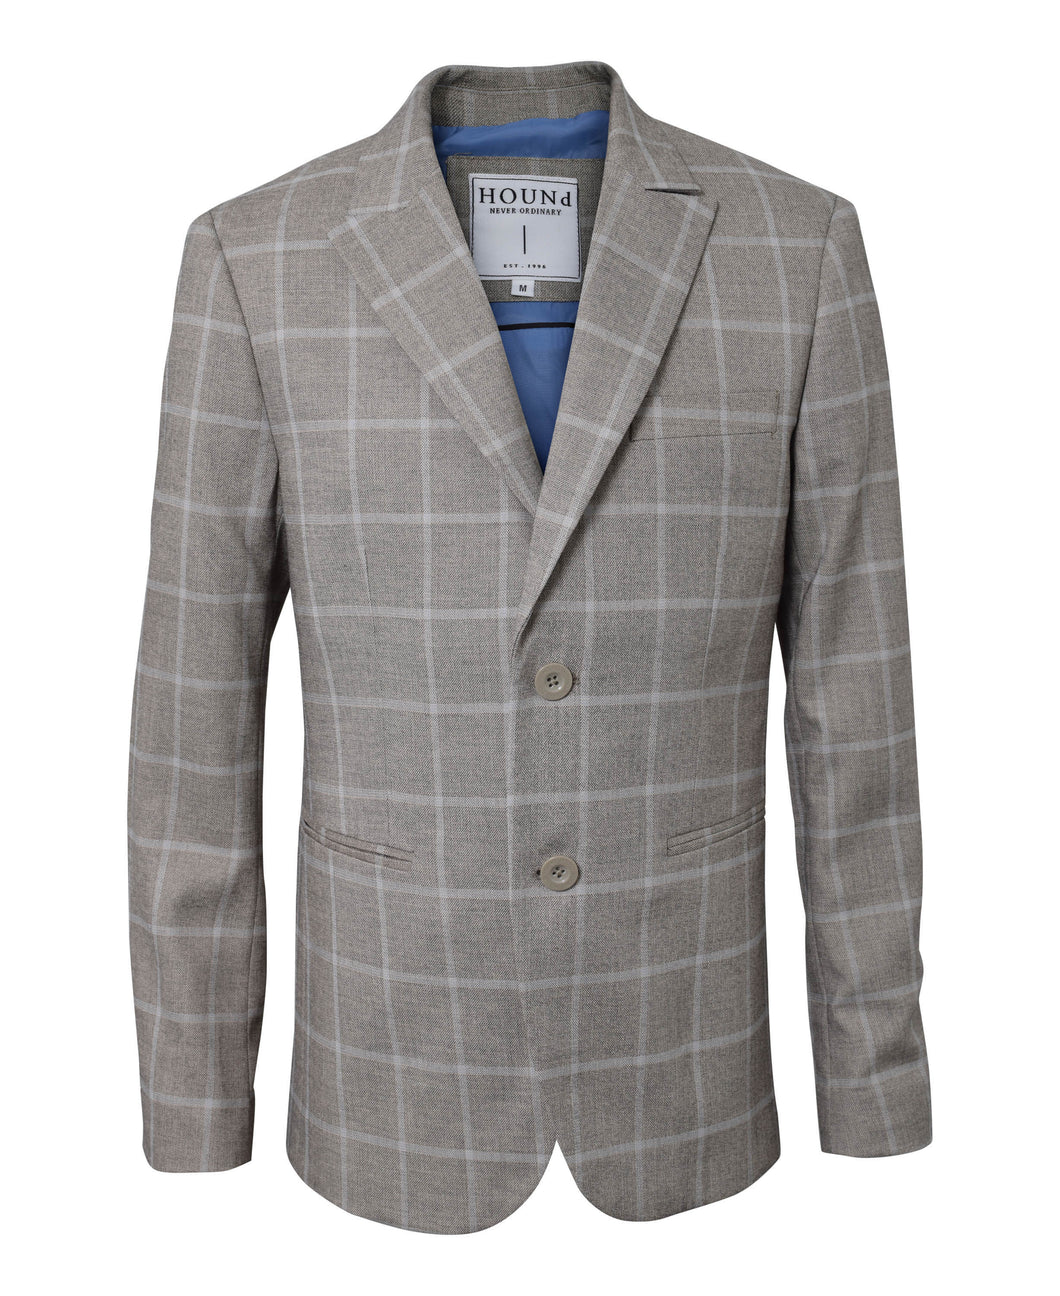 Hound-CHECK BLAZER-2201217-CHECKS